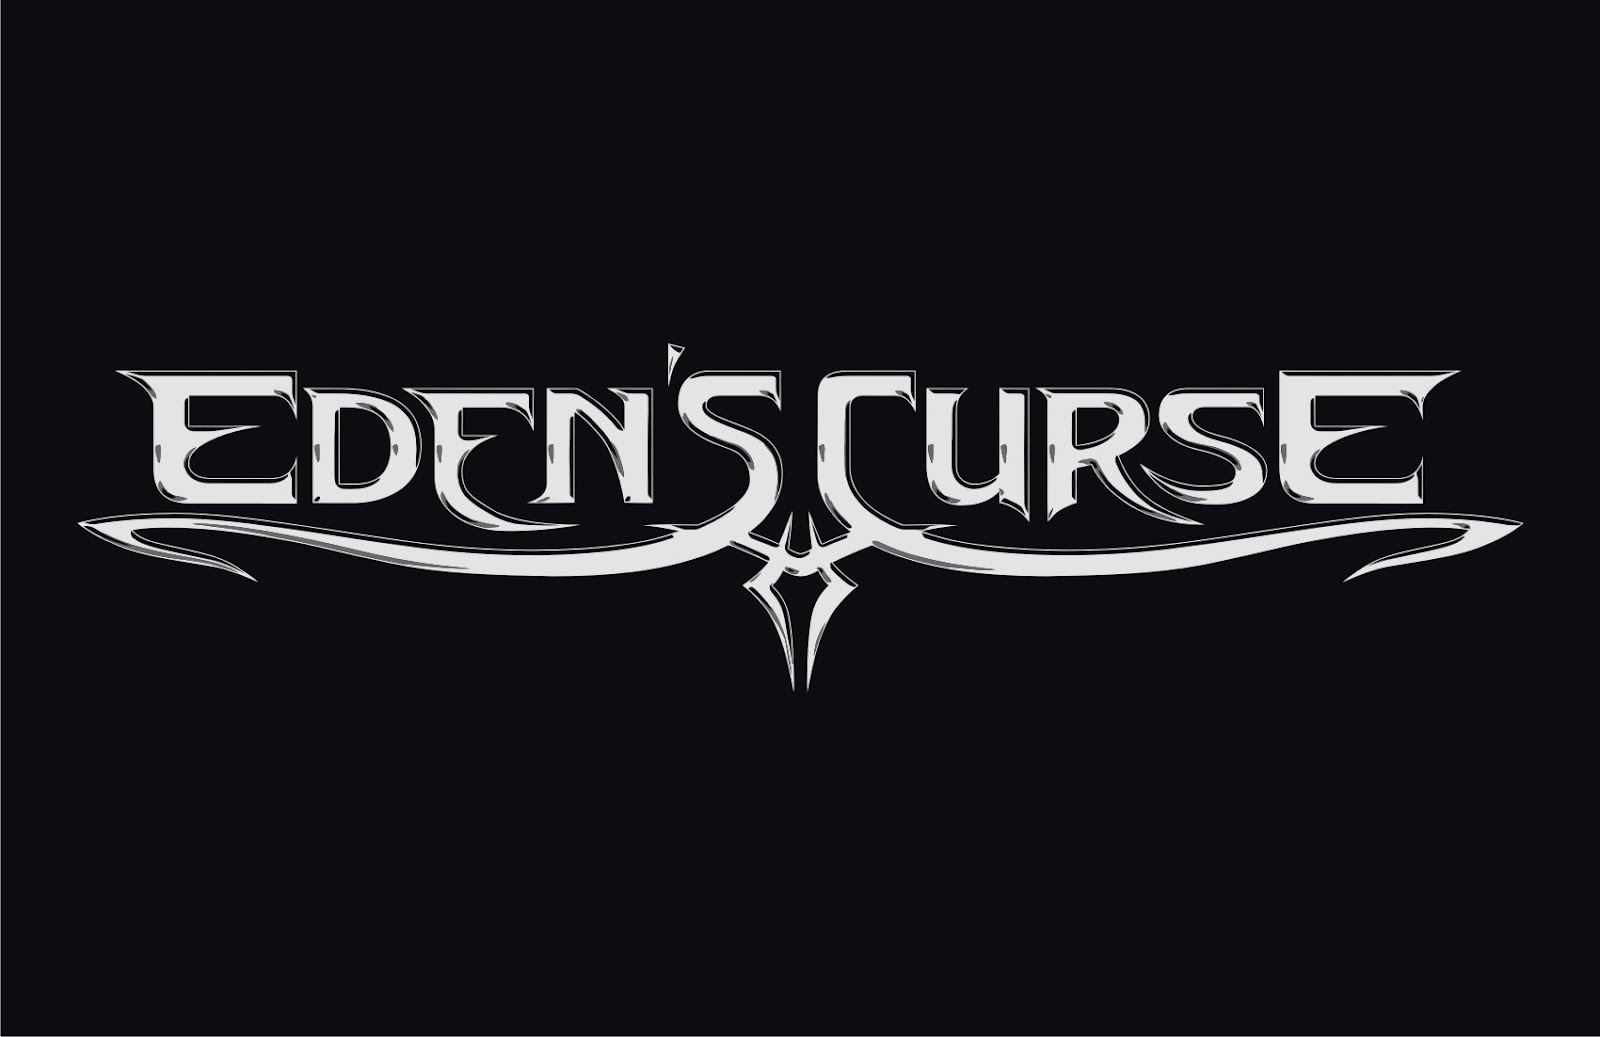 Paul Logue of Edens Curse Interview 24/12/16